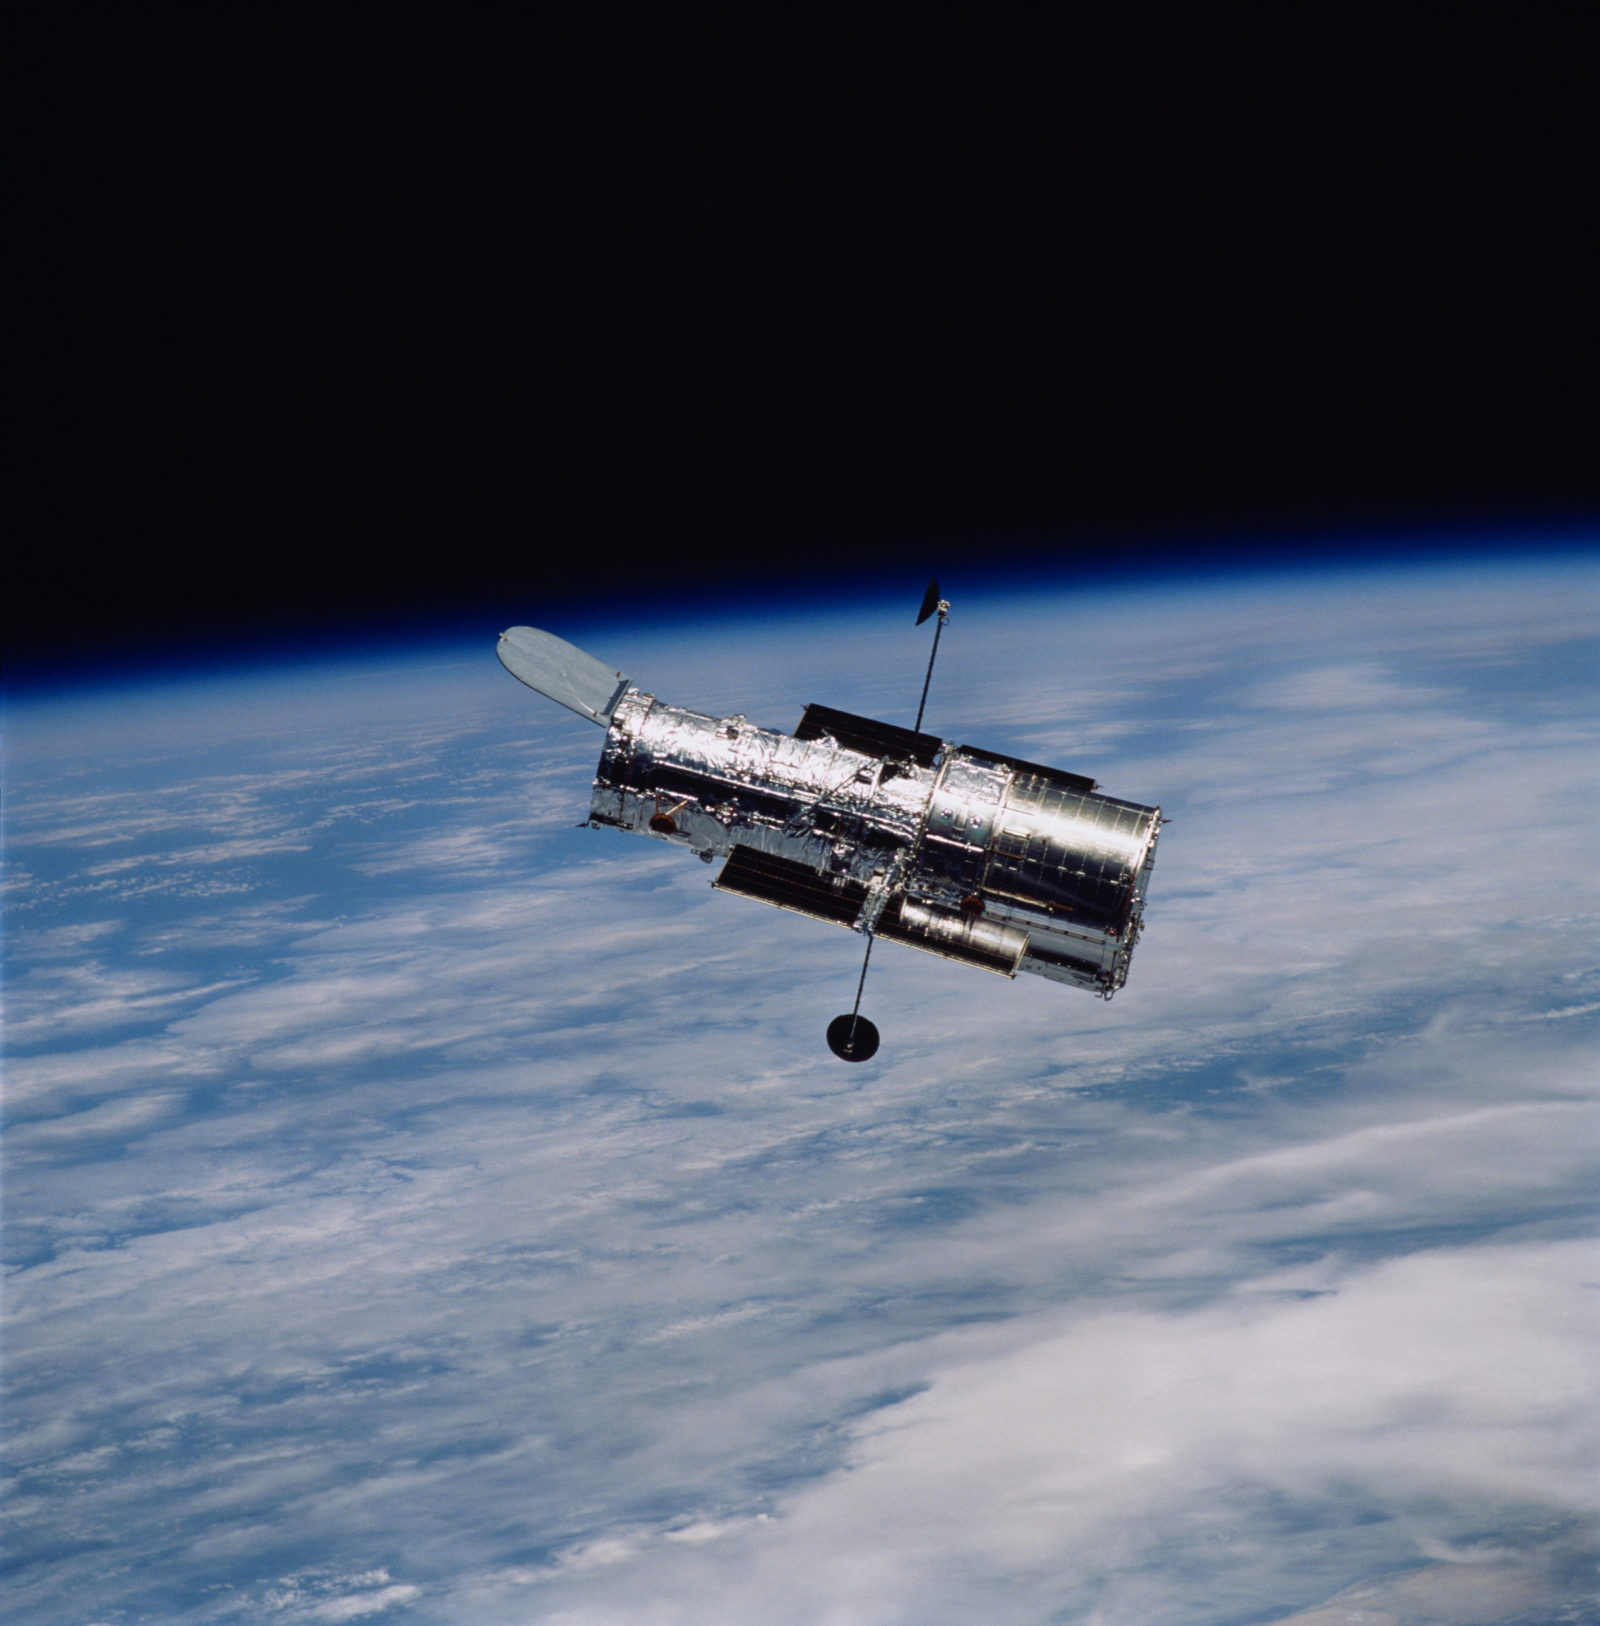 after-a-month-of-no-science,-nasa-brings-back-to-life-the-hubble-space-telescope